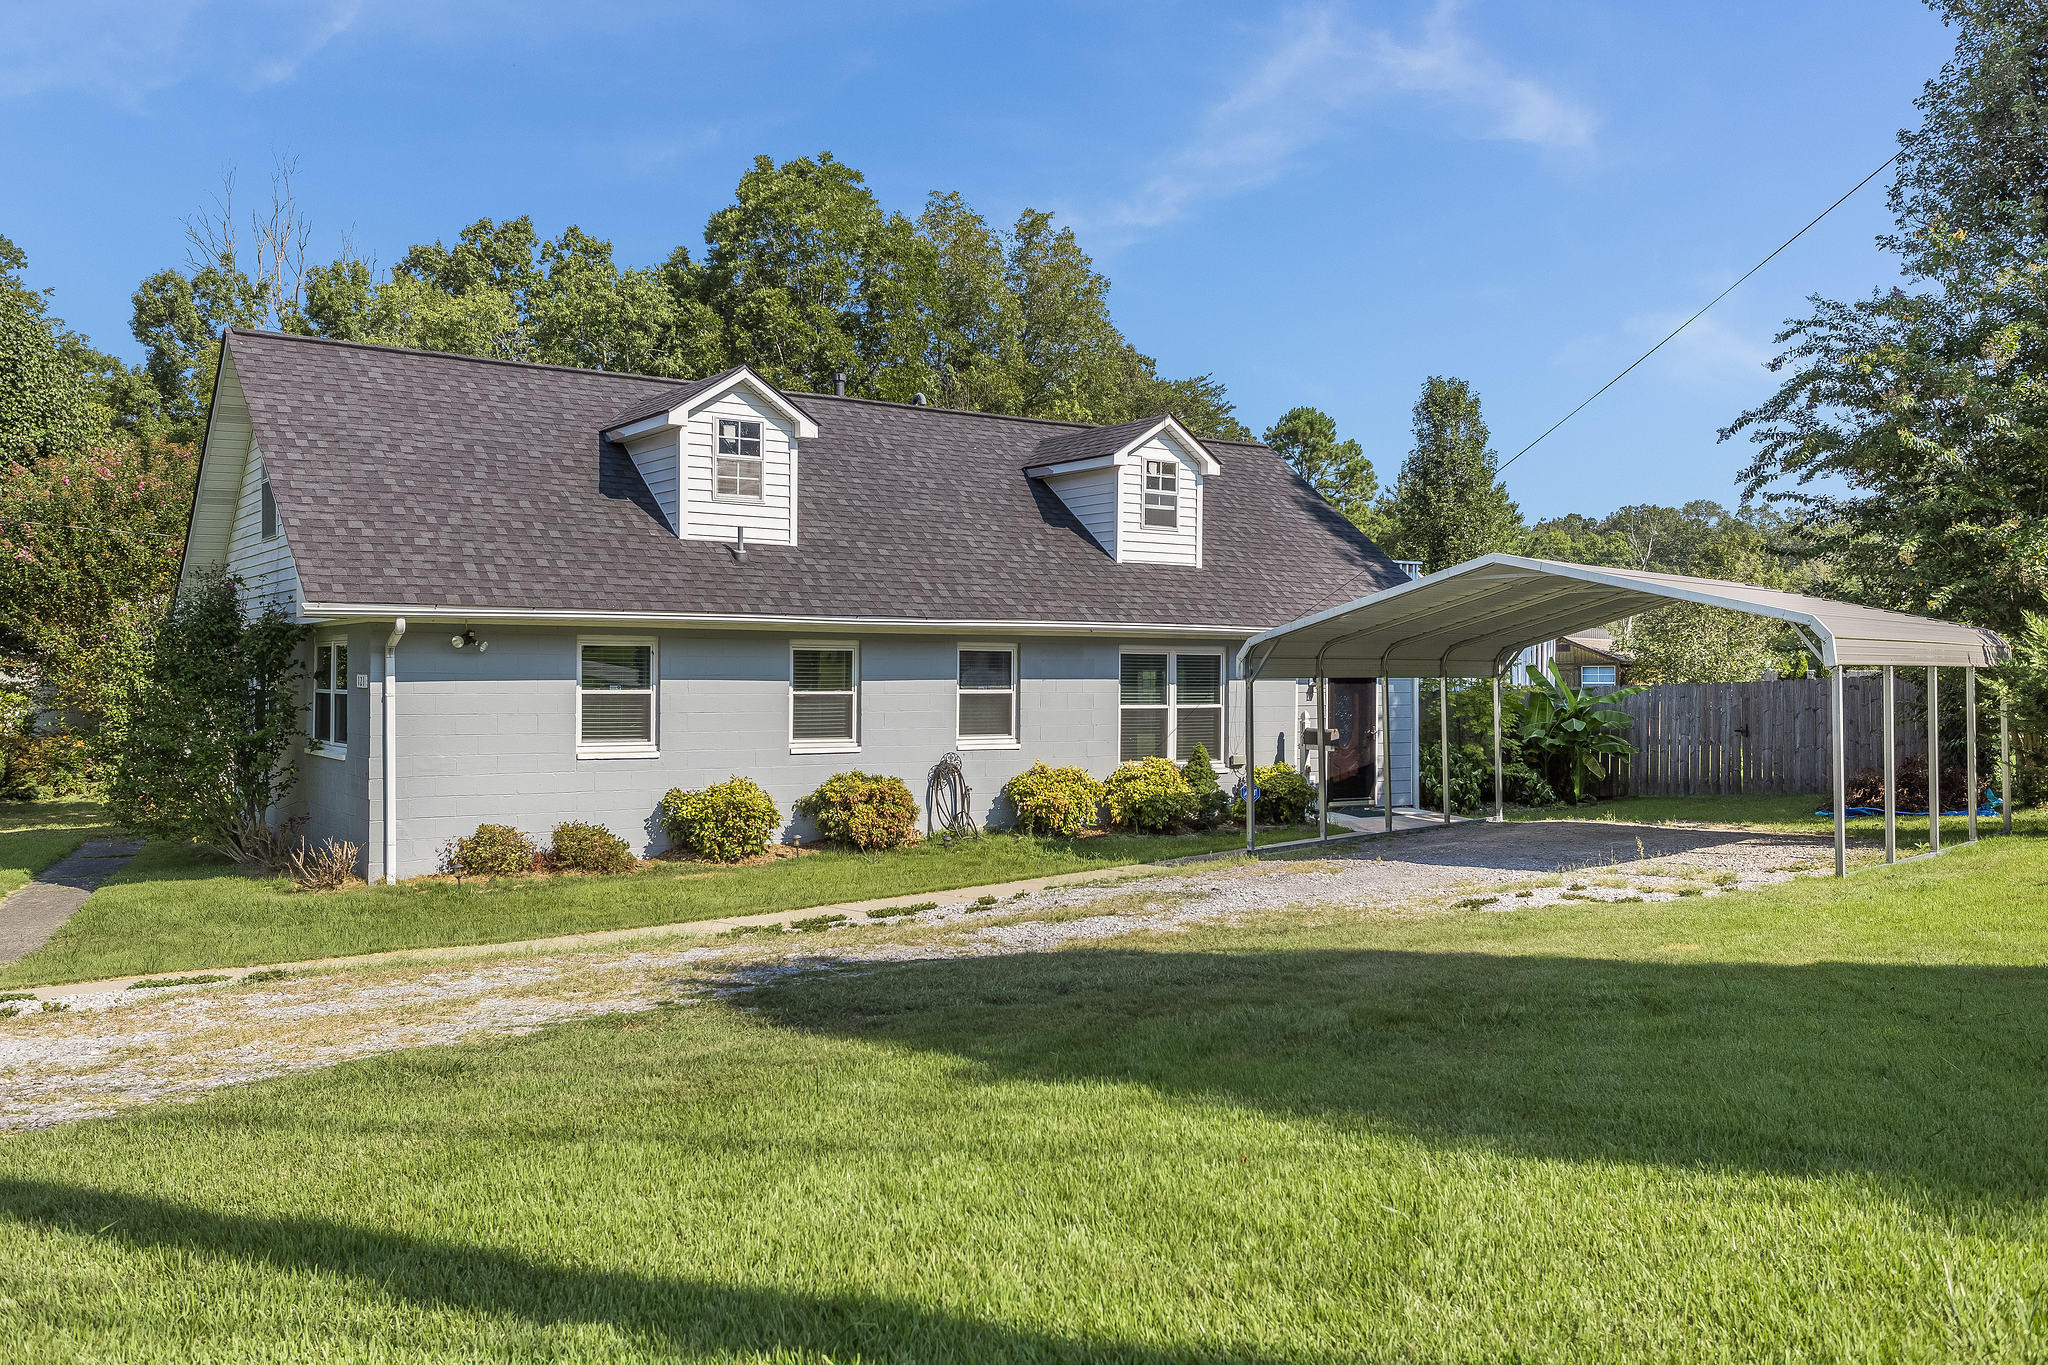 121 Manchester Rd, Oak Ridge, Tennessee 37830, 2 Bedrooms Bedrooms, ,2 BathroomsBathrooms,Single Family,For Sale,Manchester,1094795